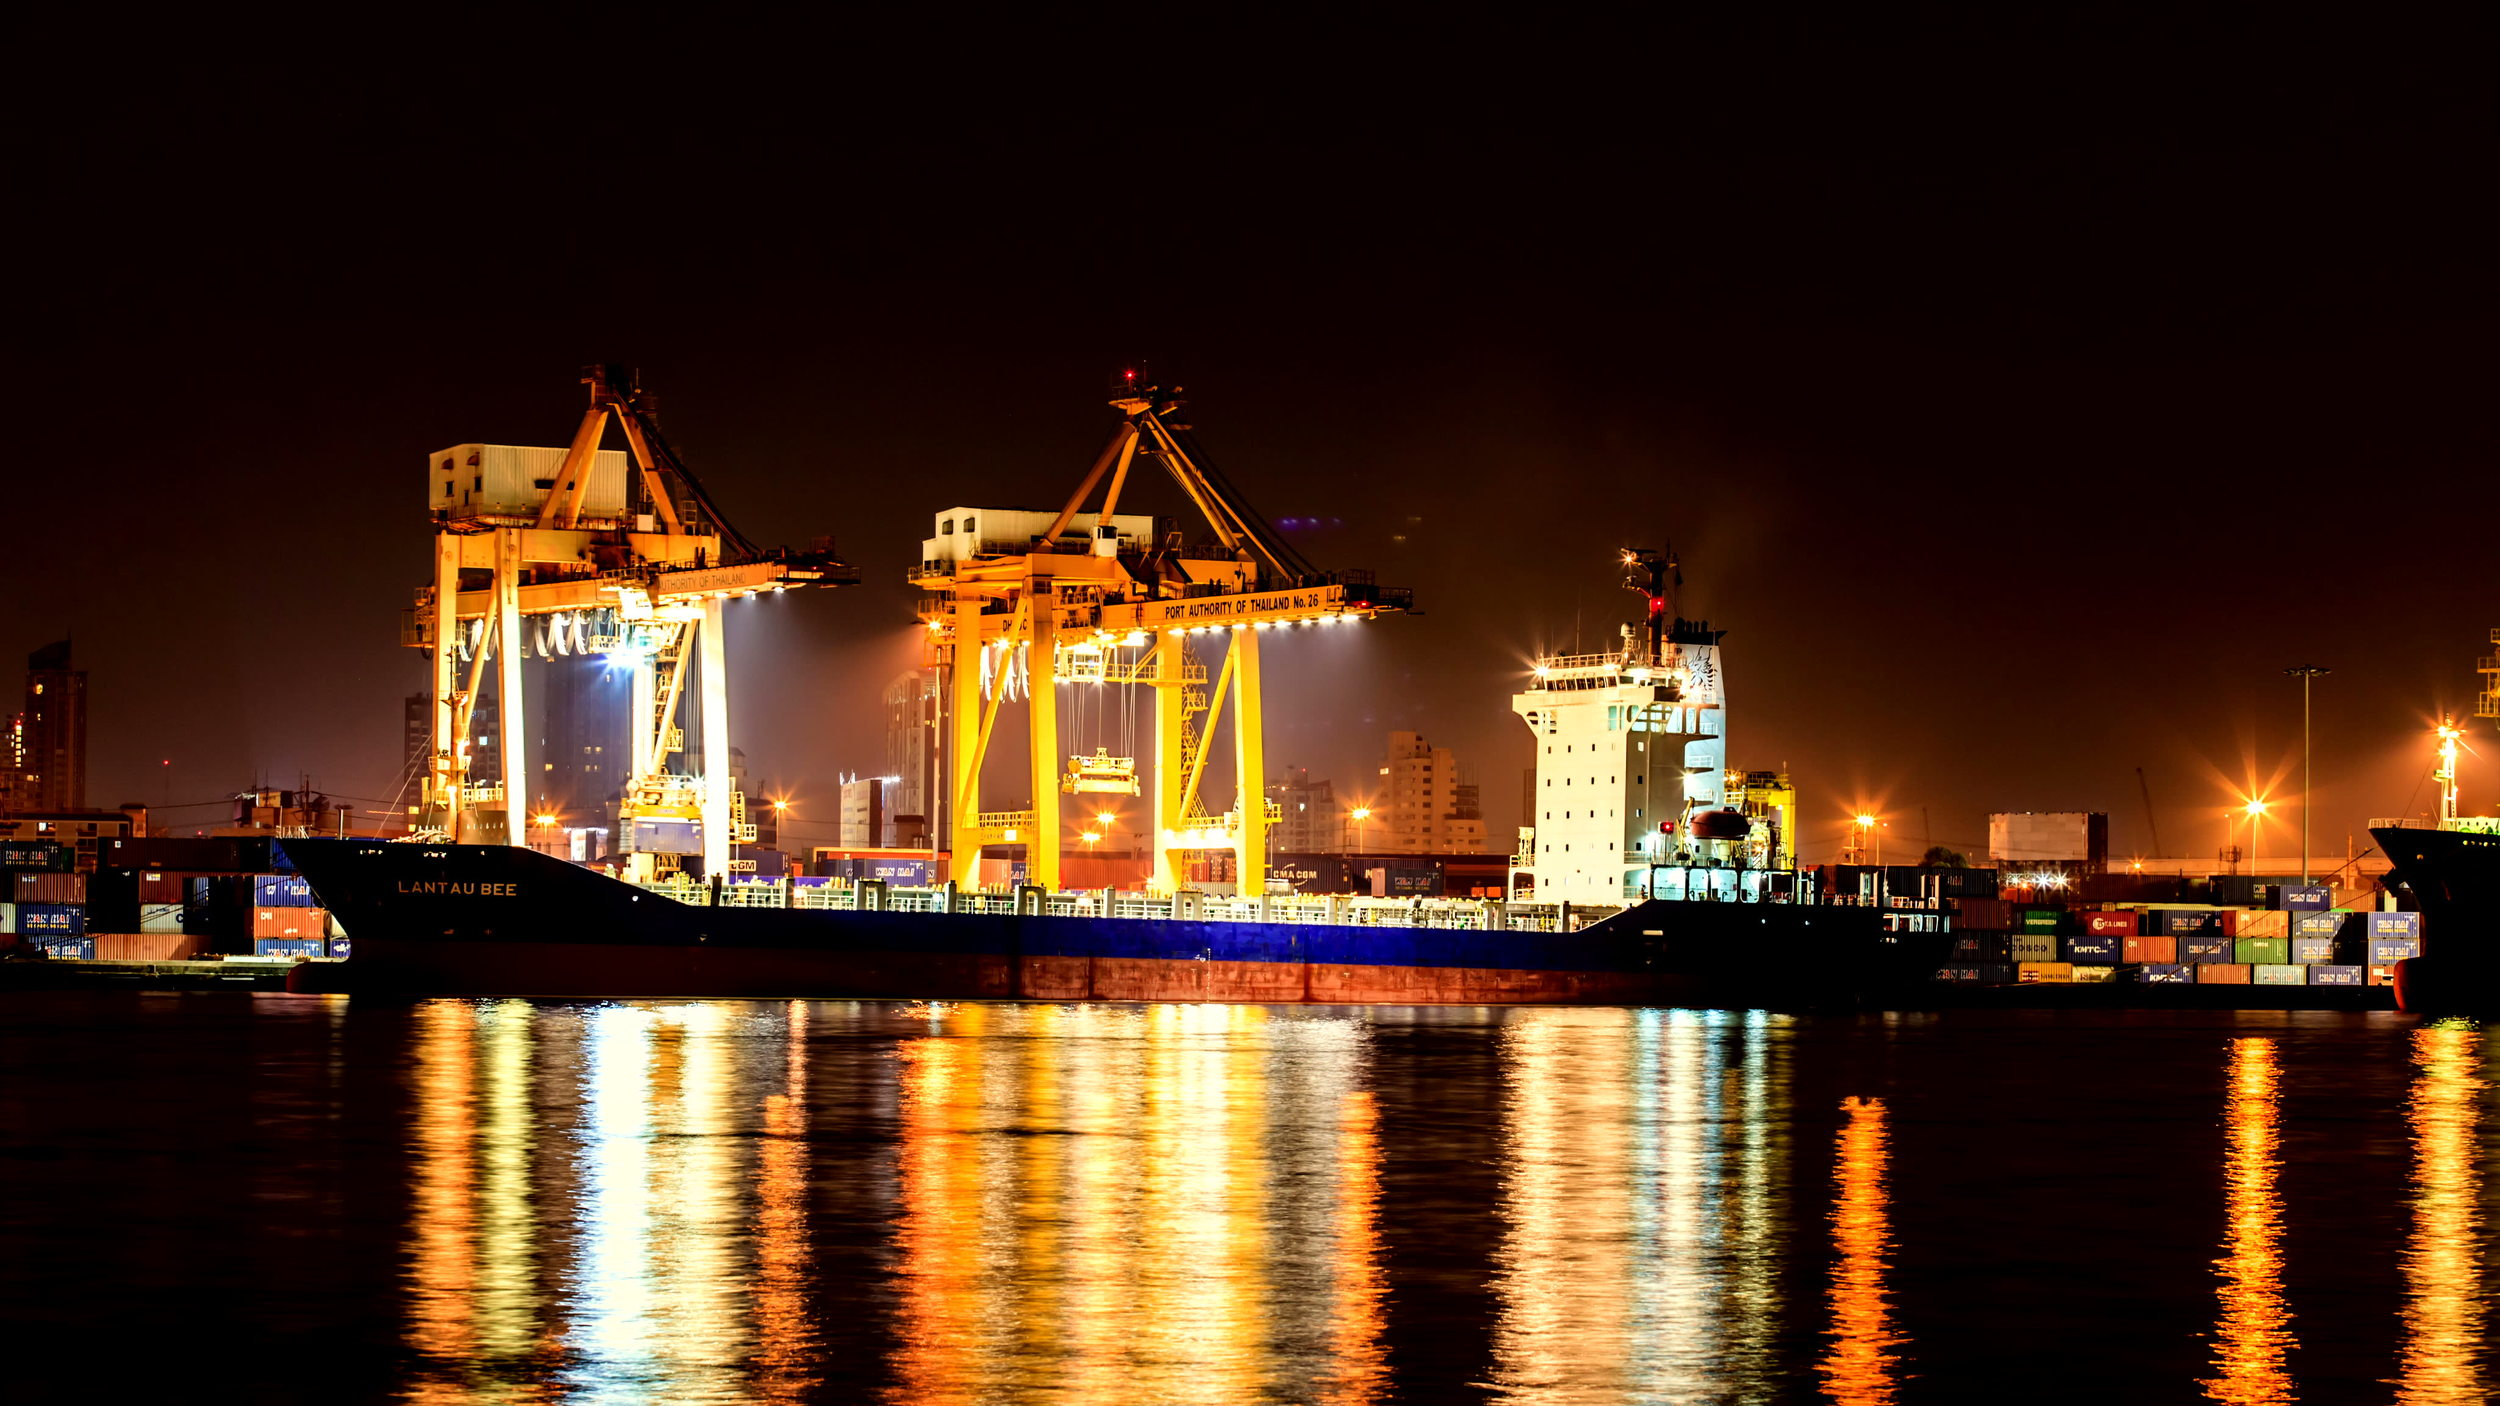 stock-footage--k-timelapse-cargo-ship-loading-goods-at-shipping-port-high-quality-ultra-hd-x.jpg